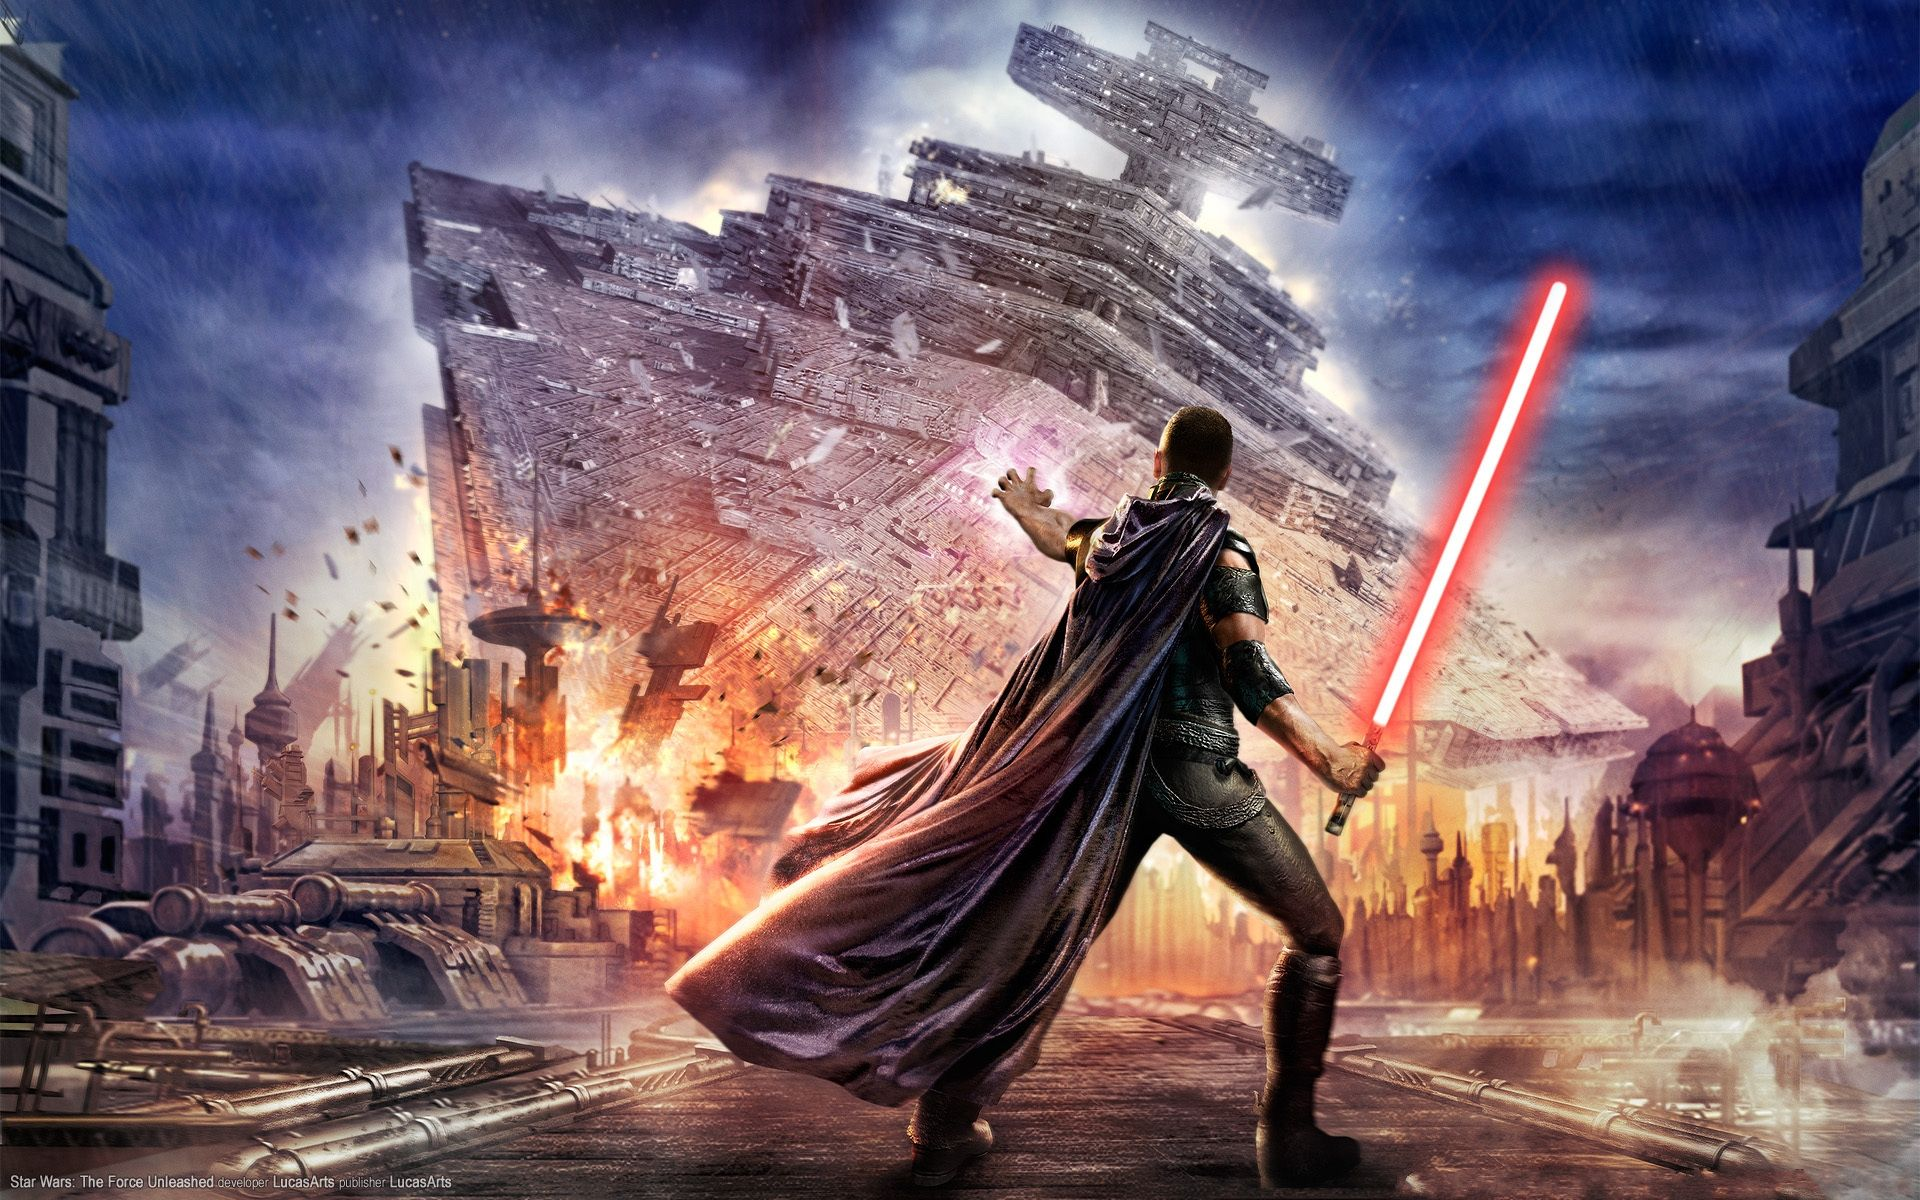 Star Wars The Force Unleashed Wallpaper Star Wars Games Star Wars Poster Star Wars Wallpaper